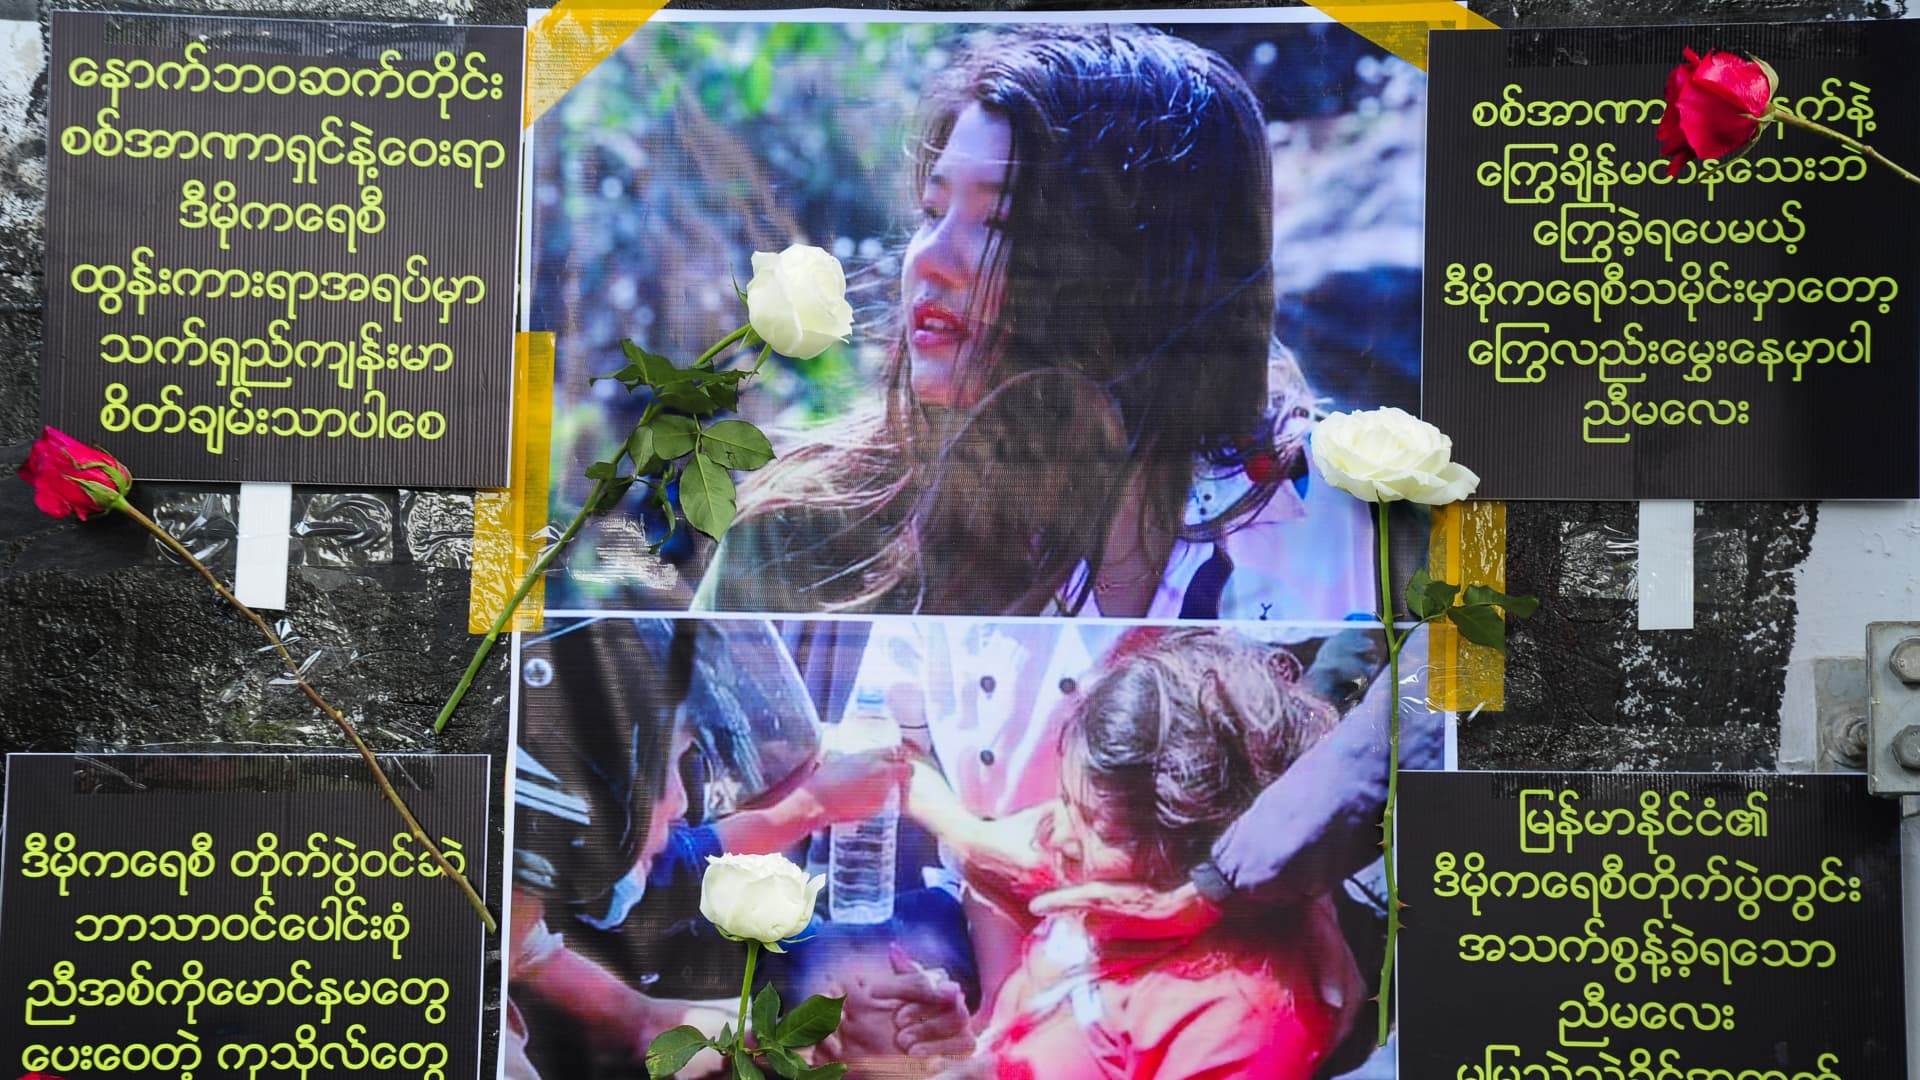 Picture of Mya Thwe Thwe Khaing is displayed by anti-coup protesters near Myaynigone junction Saturday, February 20, 2021, in Yangon, Myanmar.